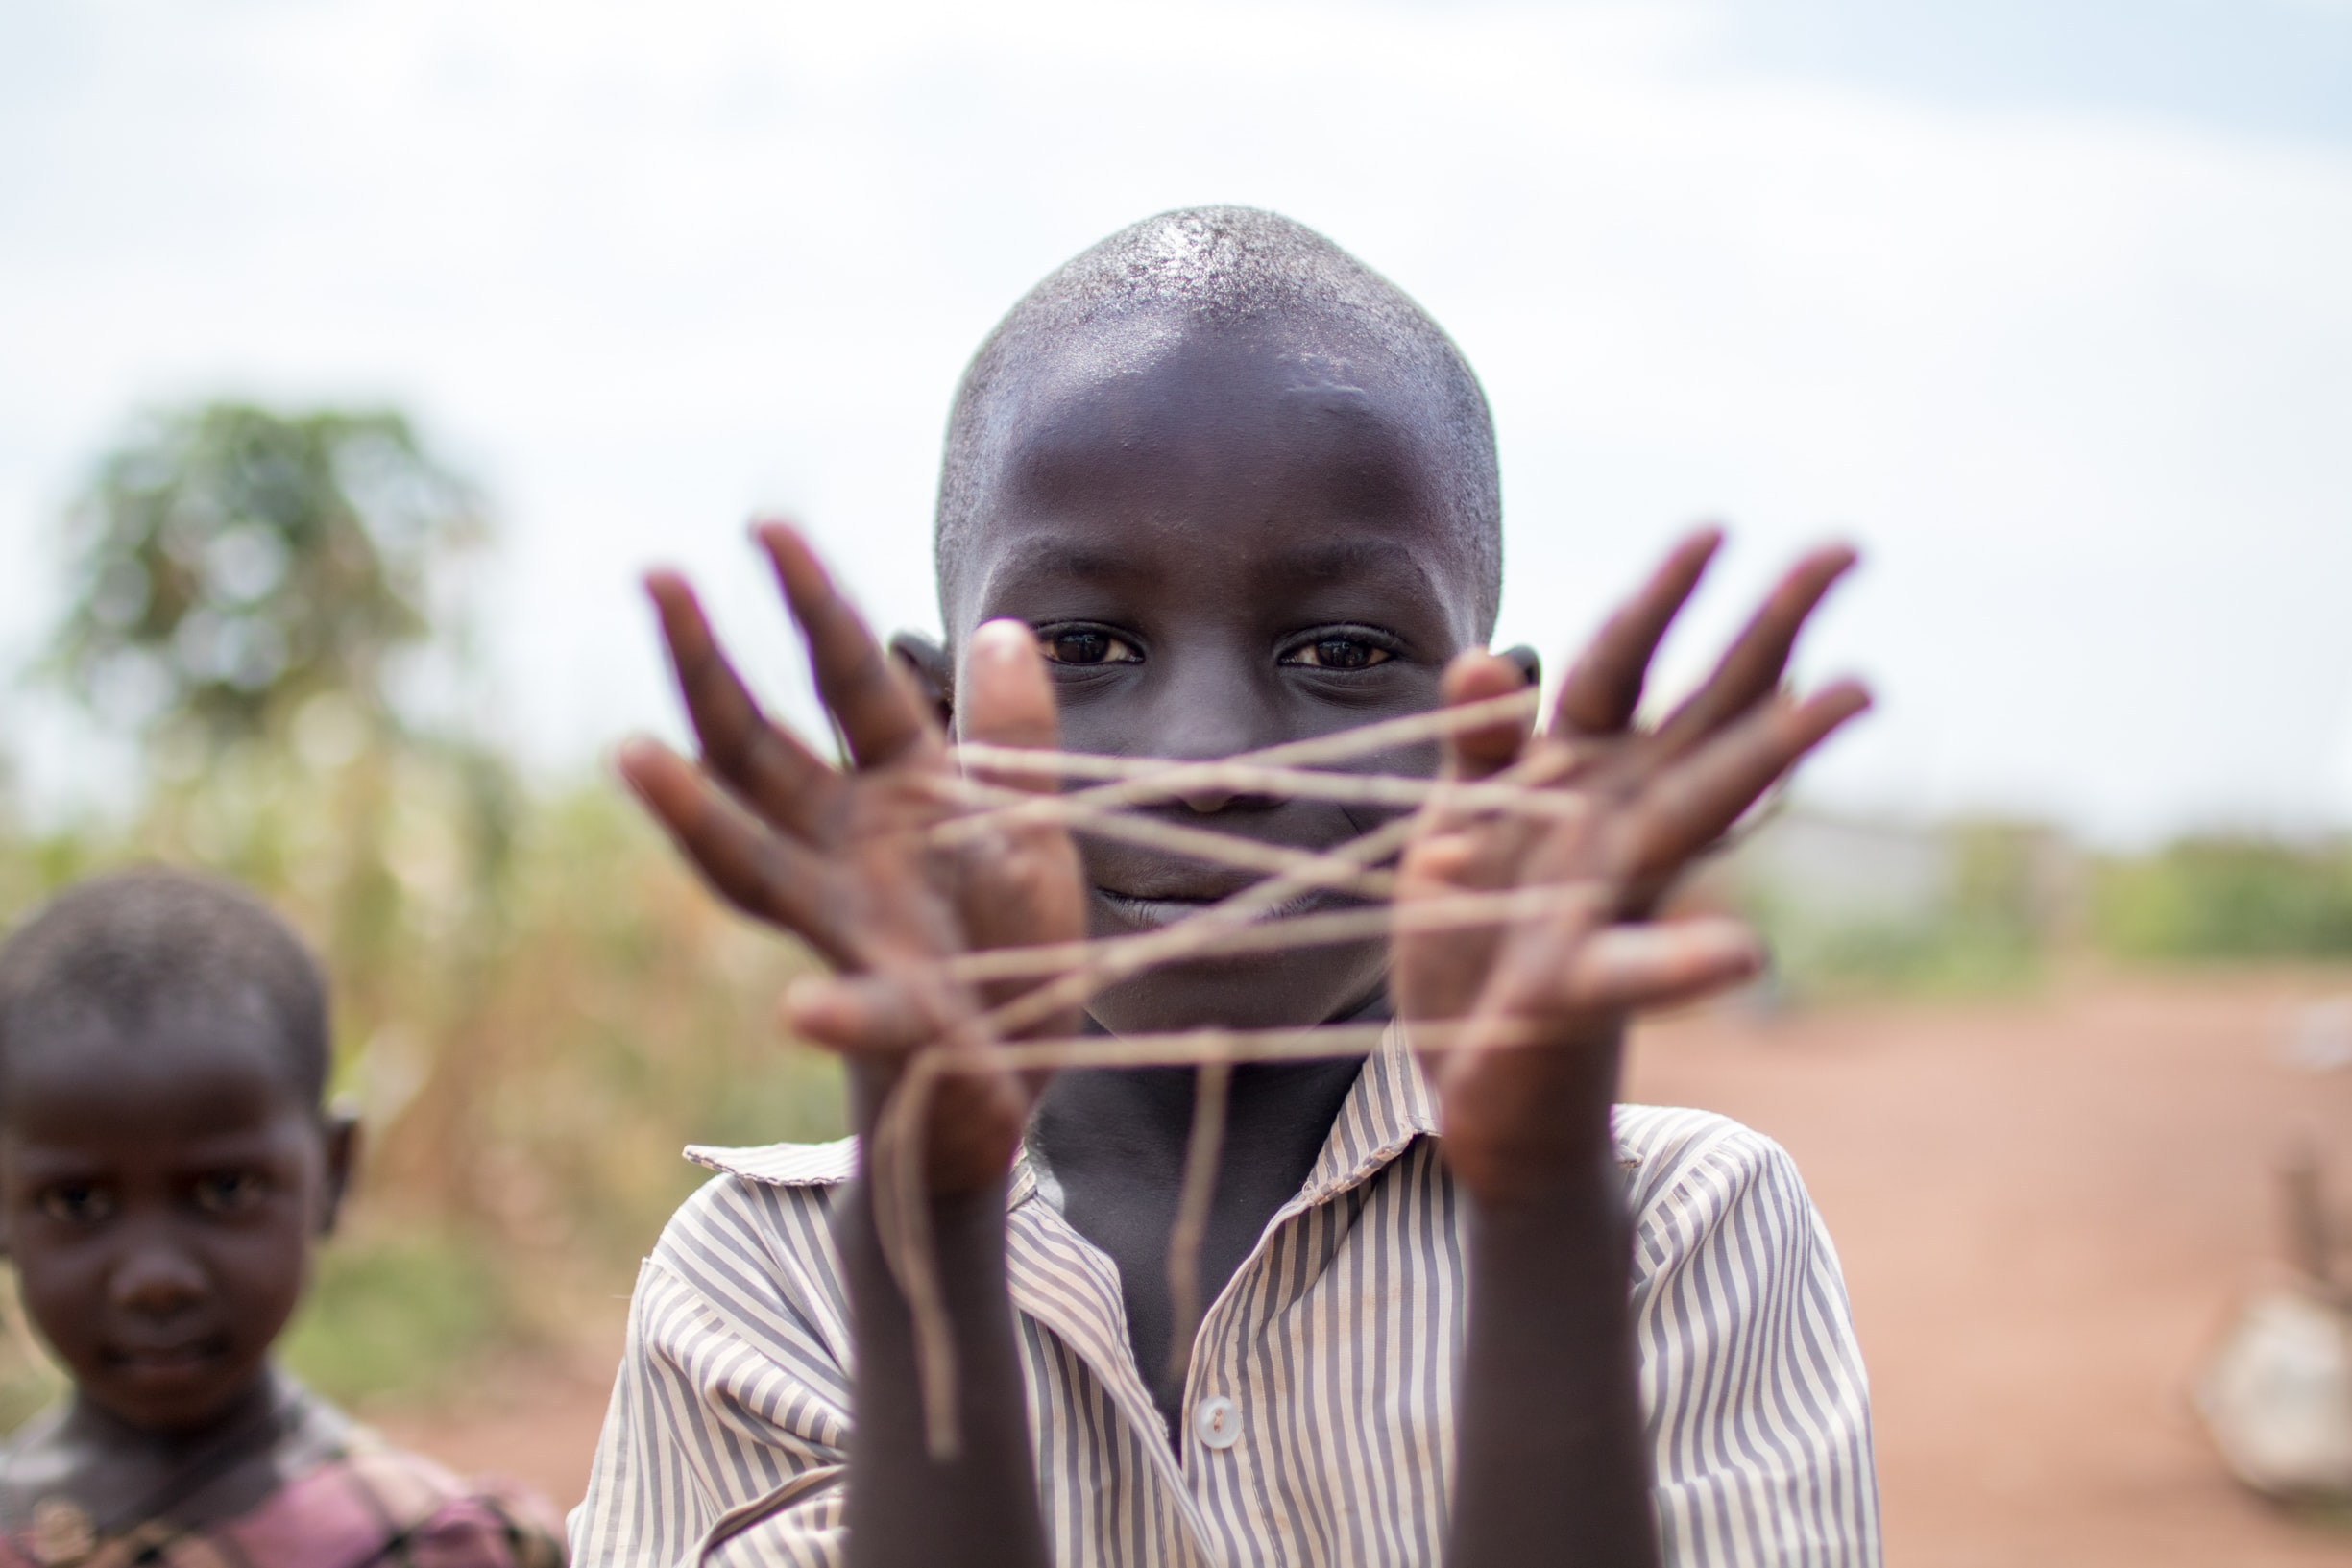 boy showing hand with rubber